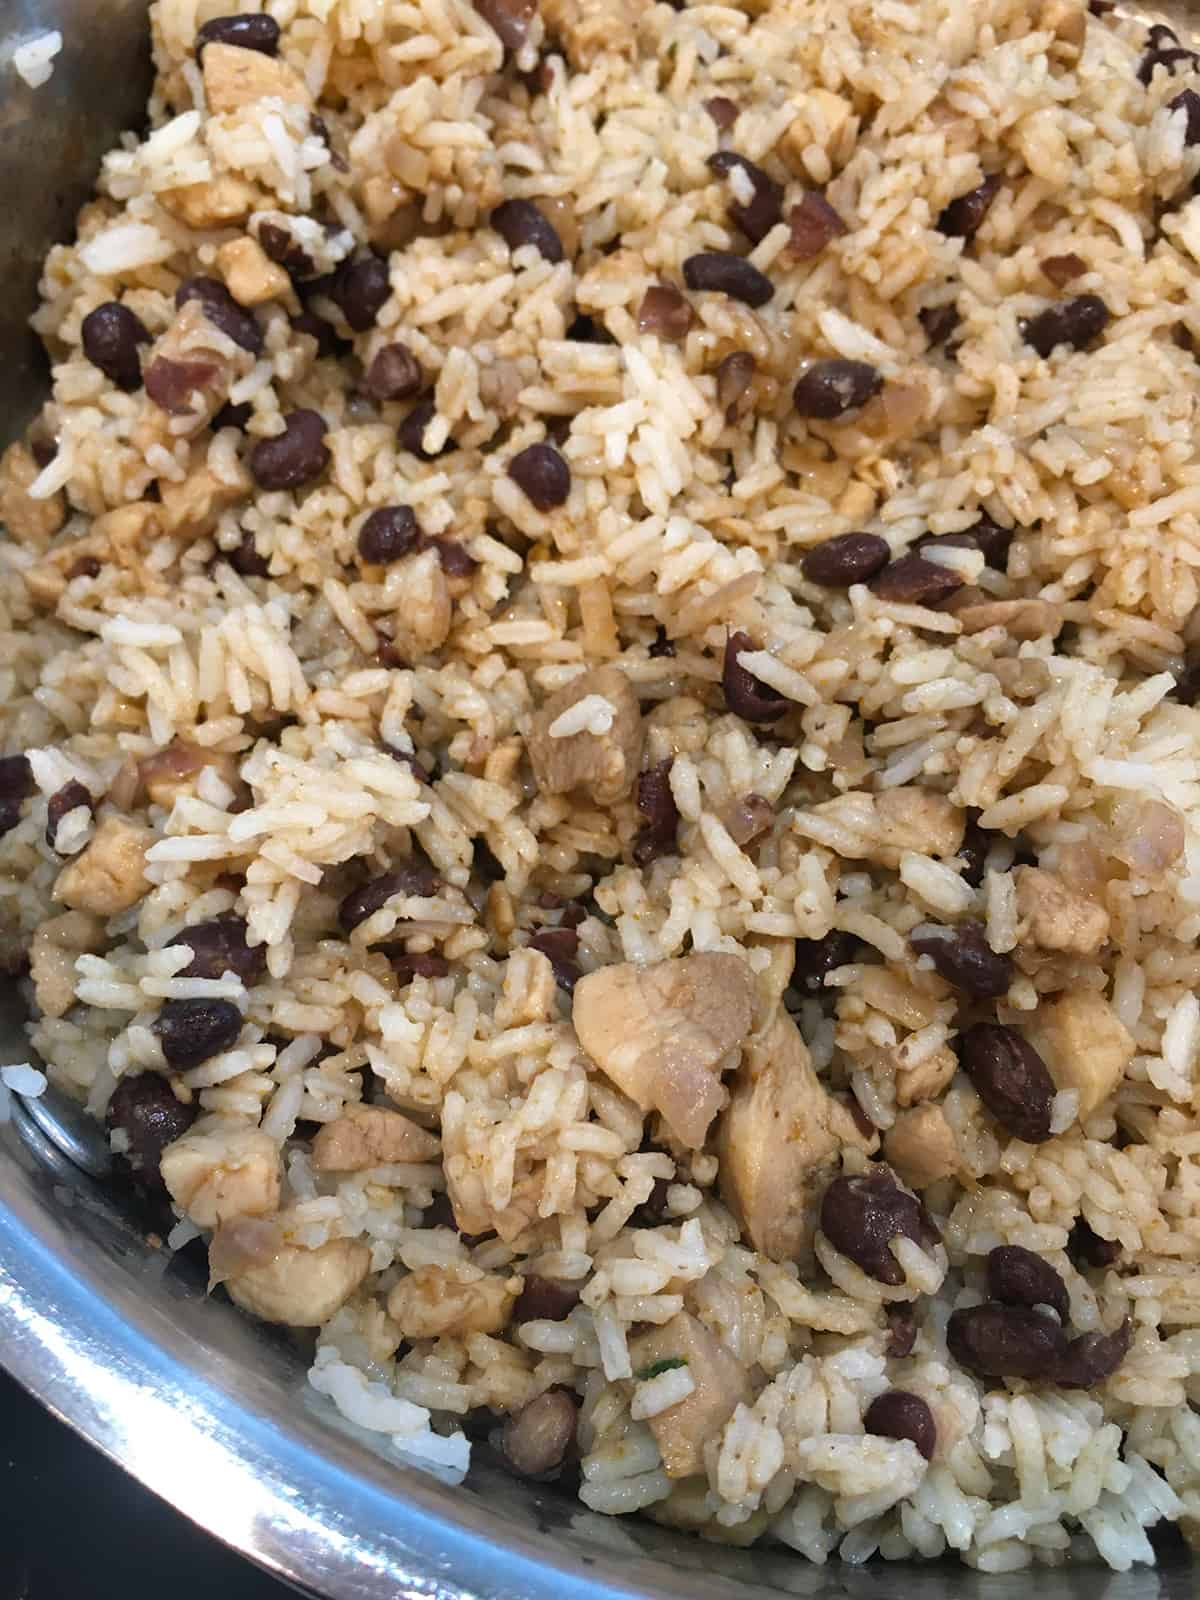 Close up of chicken burrito filling with rice and black beans in stainless steel pot